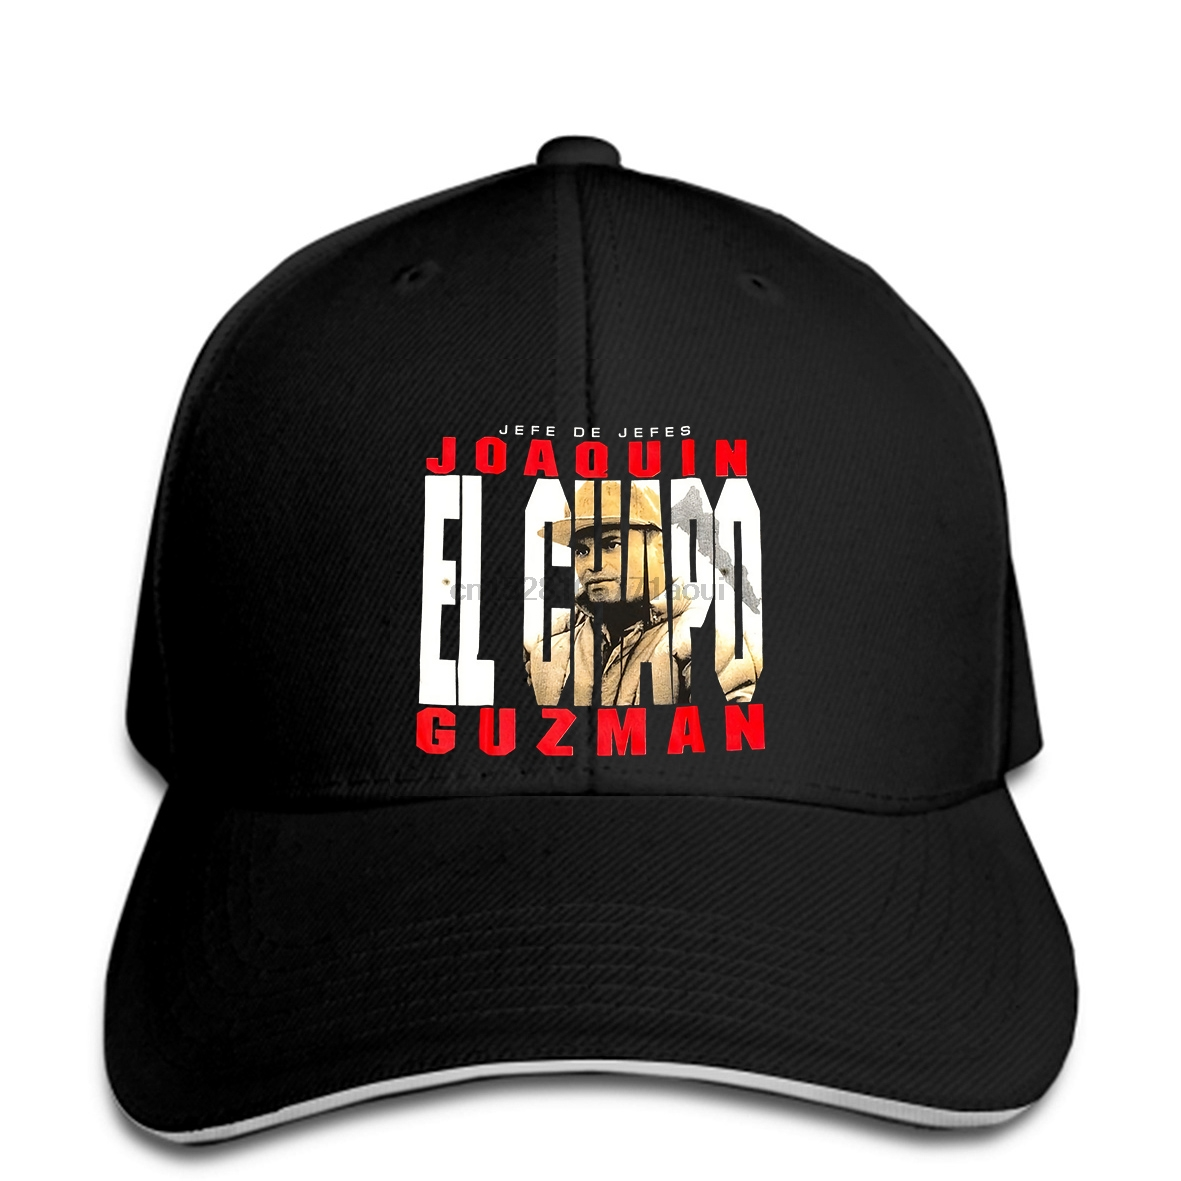 Baseball Cap El Chapo Baseball Caps Joaquin Guzman Jefe De Jefes Solid Fit Logo Men Fashion Baseball Caps Women Print Hat